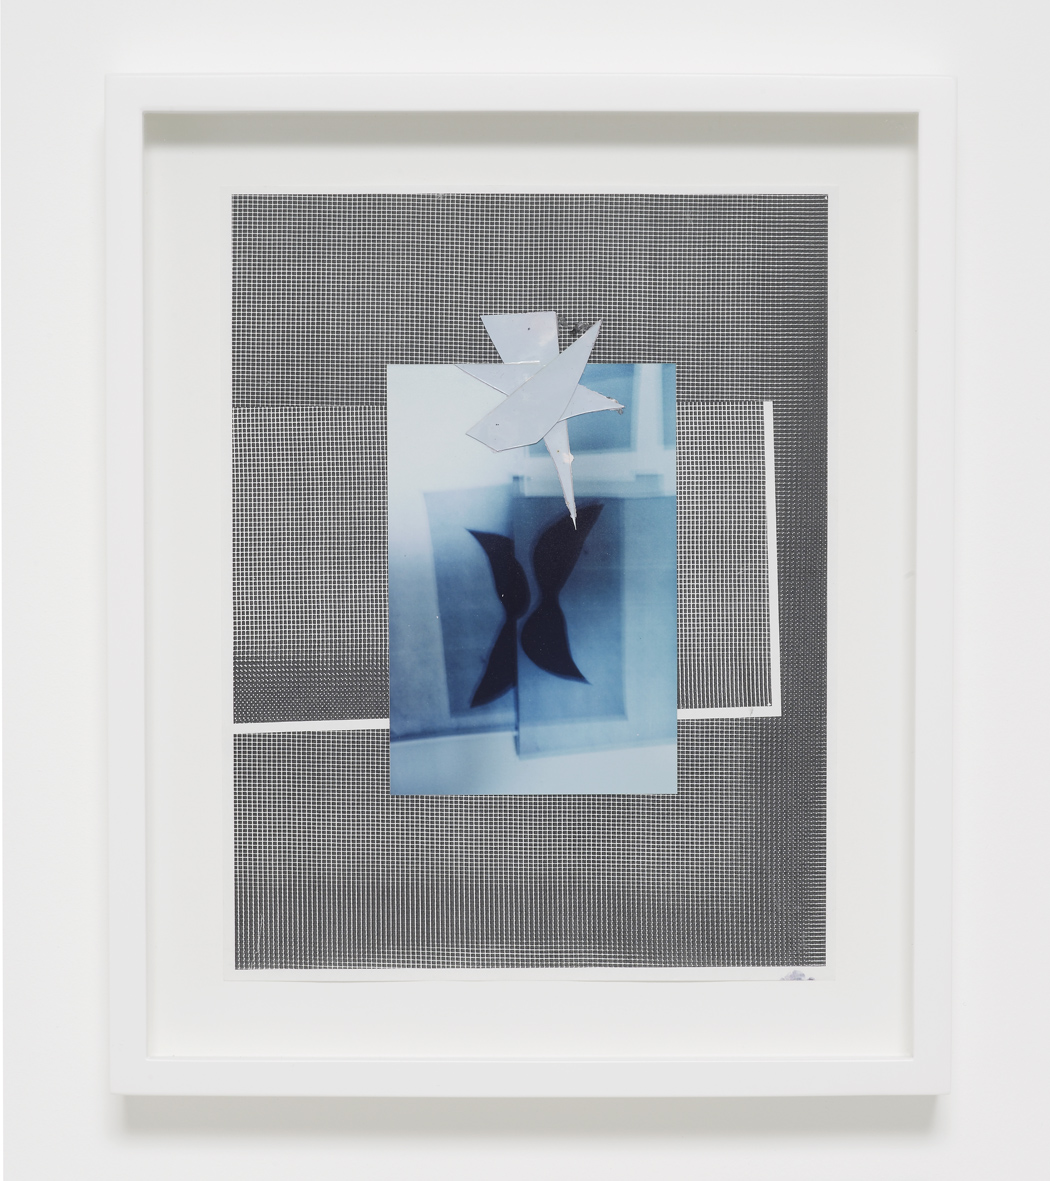 Josh Brand  Untitled   2018  Mixed media, c-print, dyed photograms, photocopy   35.5 x 29 x 4.4 cm / 13.9 x 11.4 x 1.7 in framed